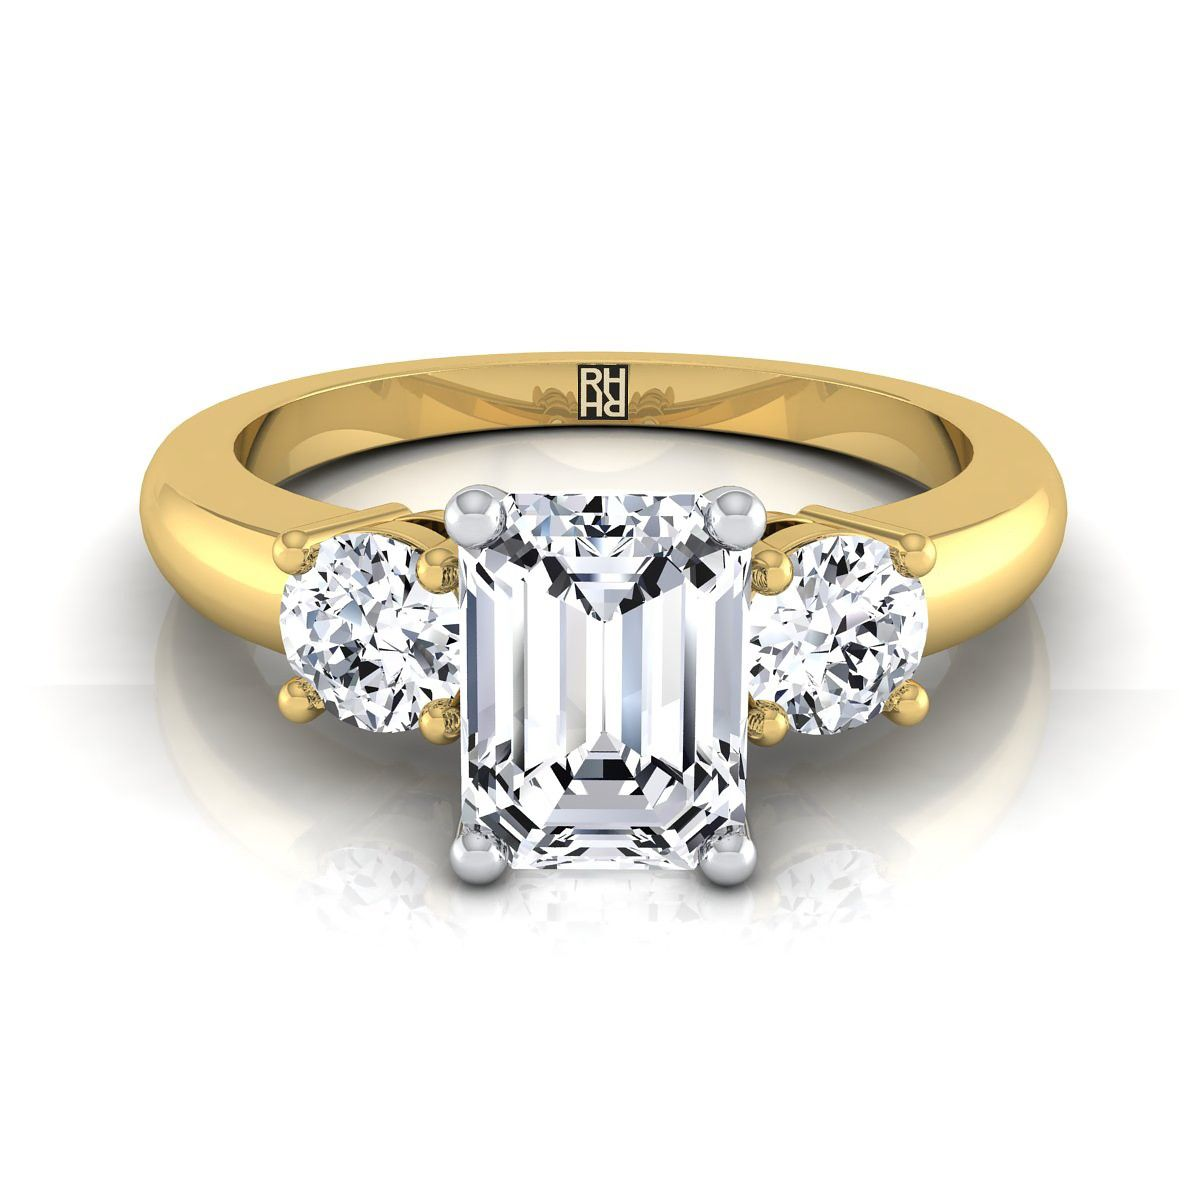 adc89ddeafeb4 Diamond 3 Stone Engagement Ring With Emerald Cut Center And Round ...